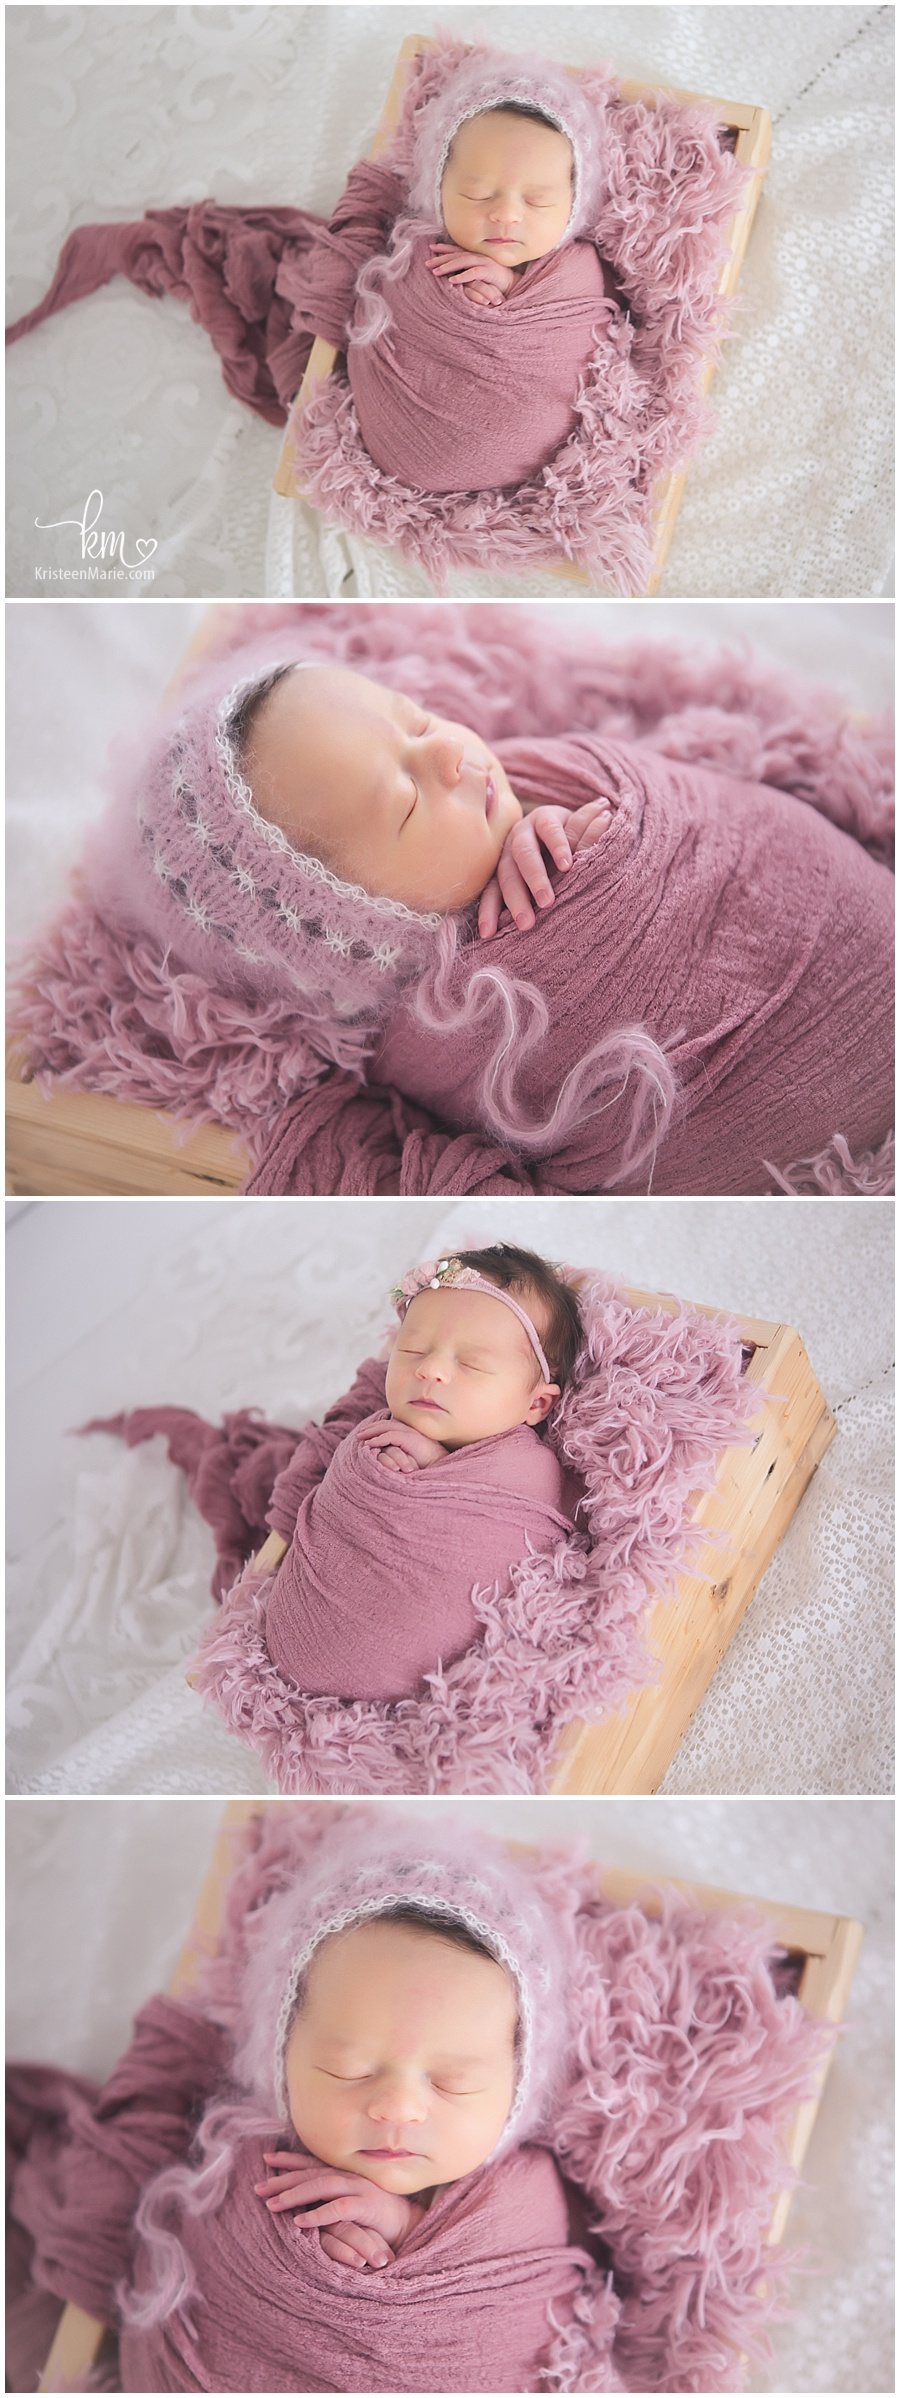 Pink newborn picutres of baby in basket - cute girly newborn shots